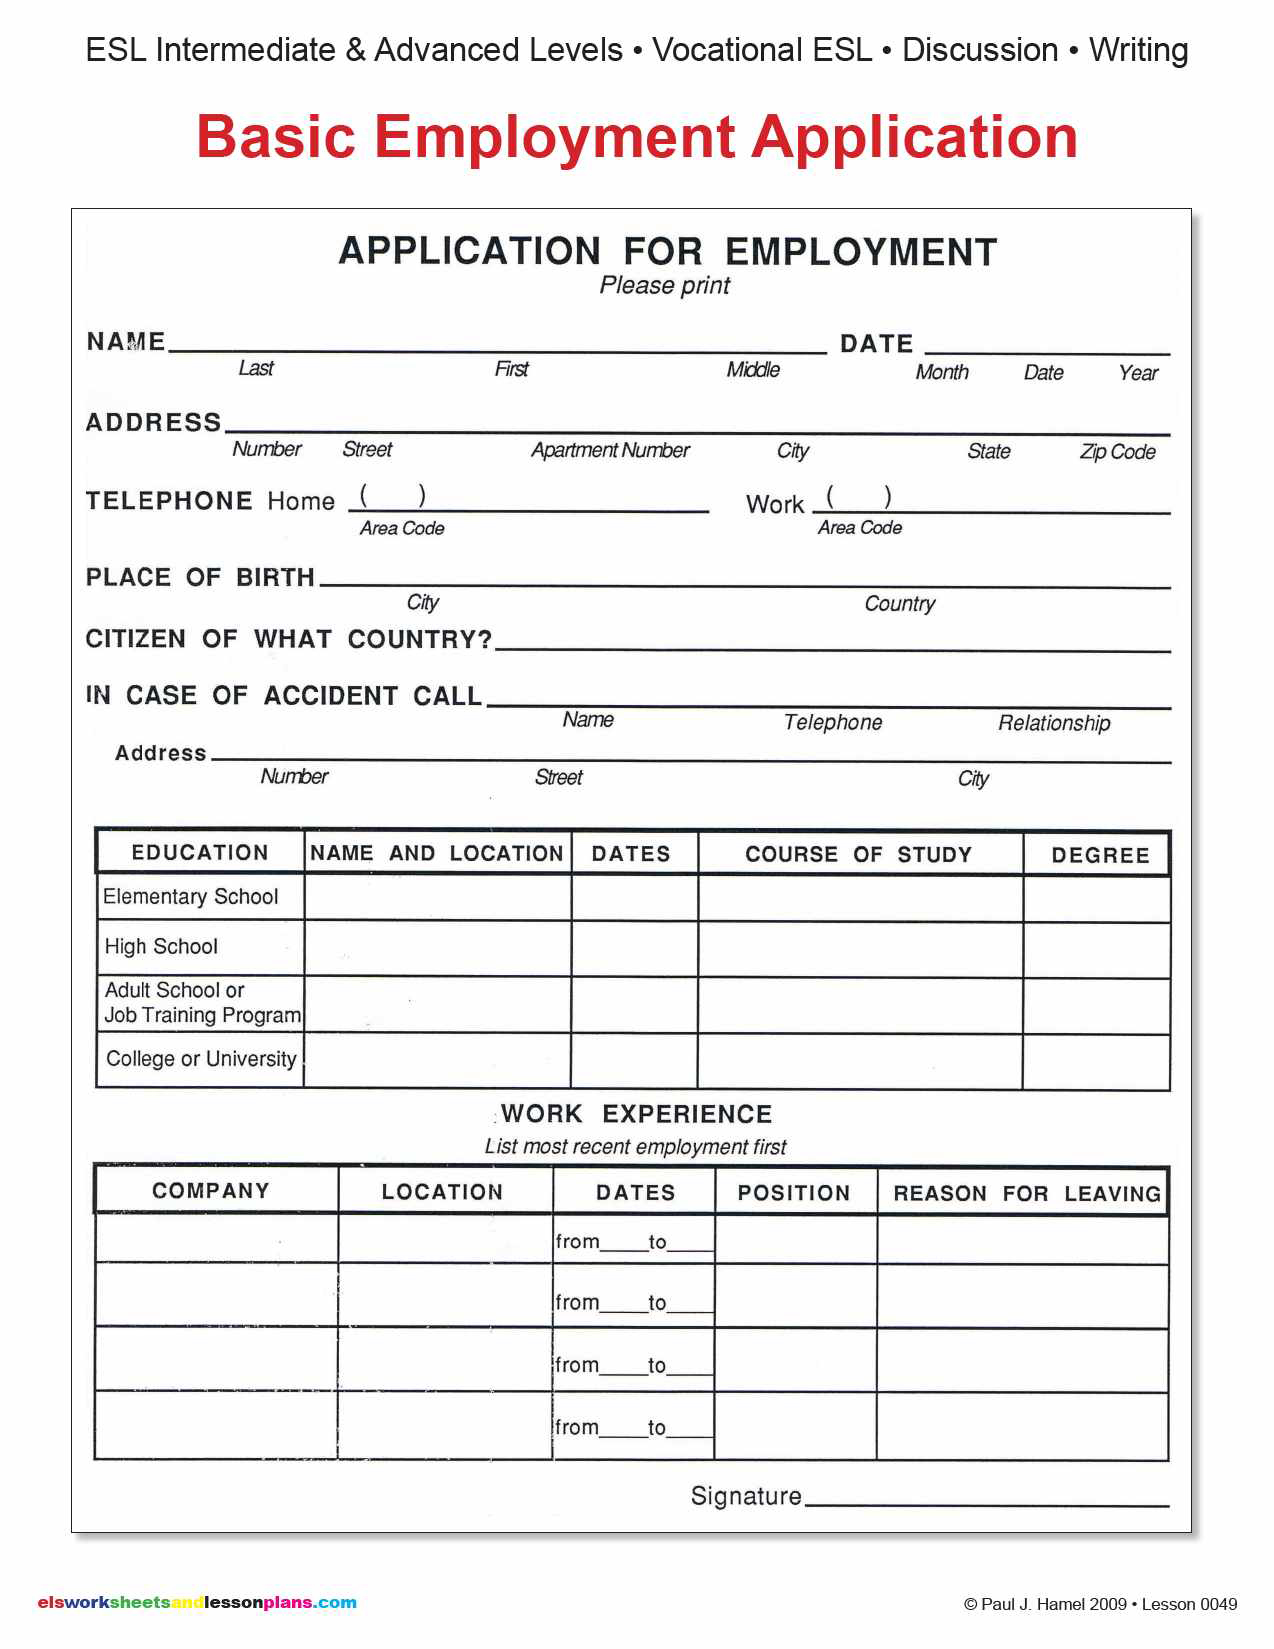 job application pdf generic sample customer service resume job application pdf generic job application form pdf employment generic job application pdf generic